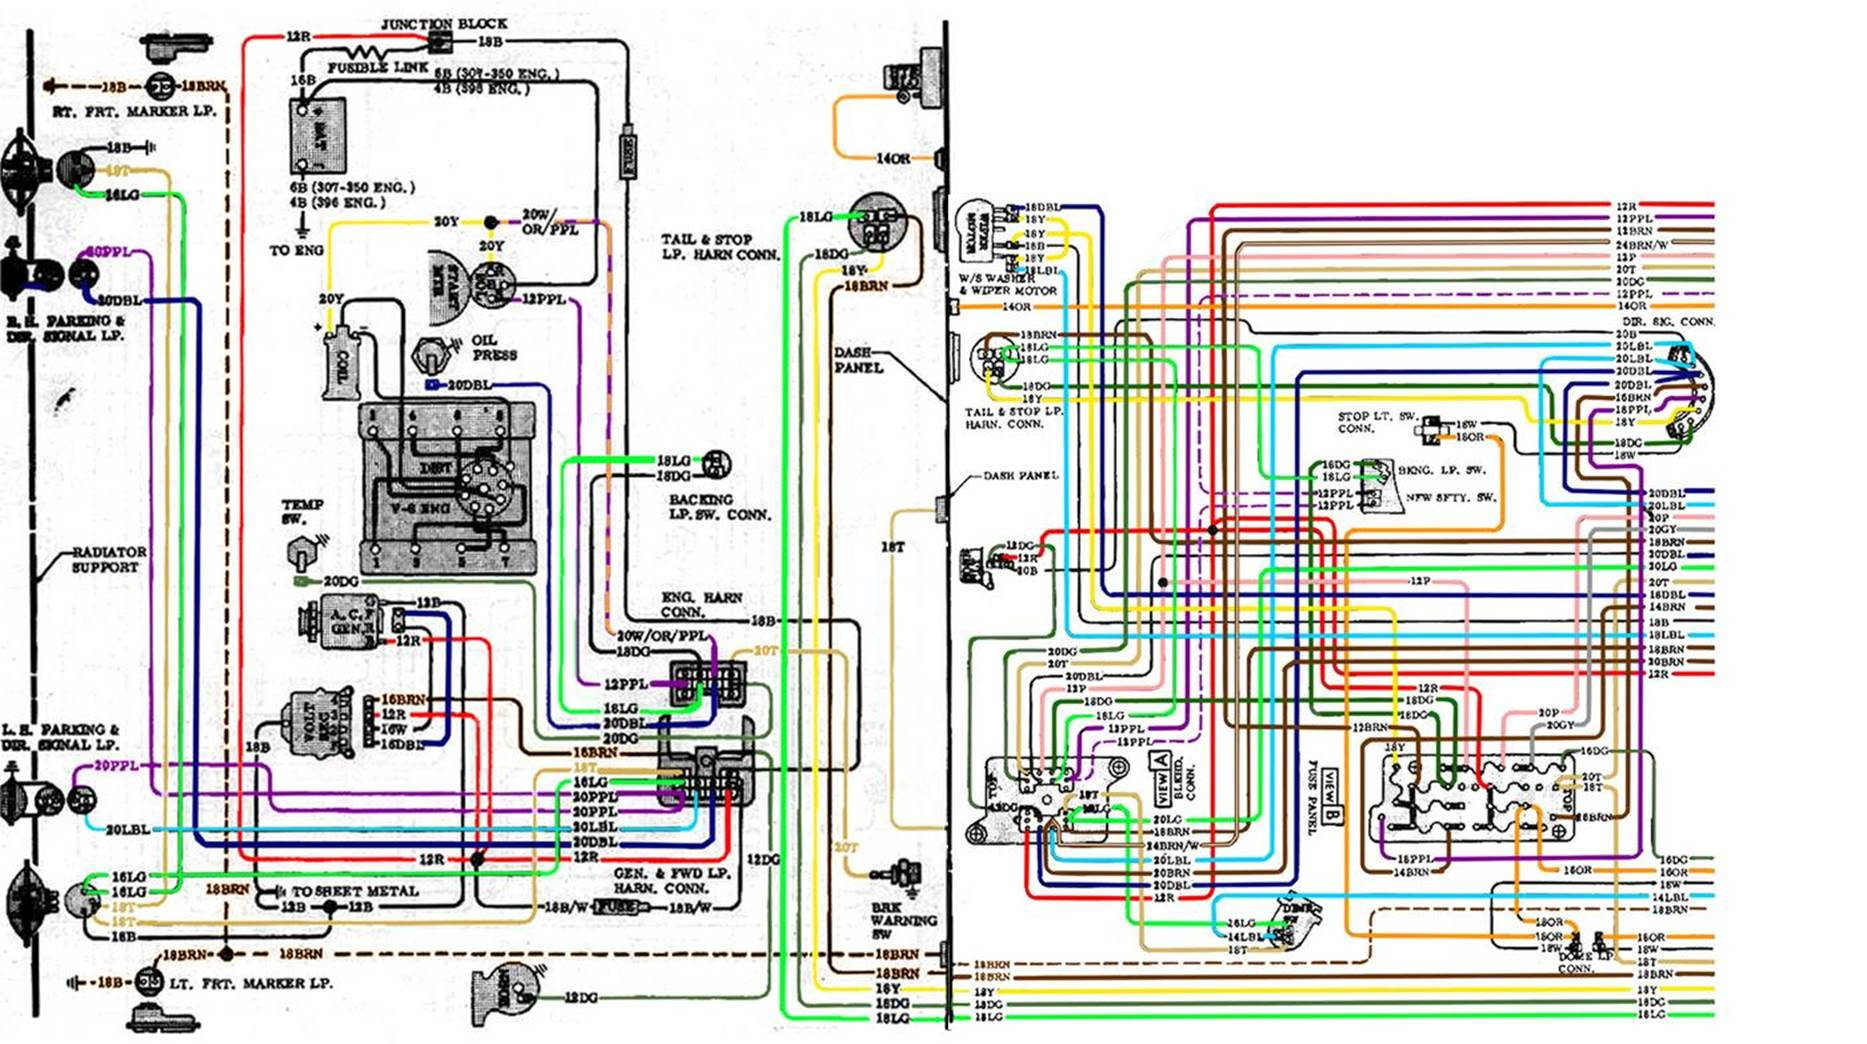 image002 67 72 chevy wiring diagram 1970 chevelle dash wiring diagram at readyjetset.co